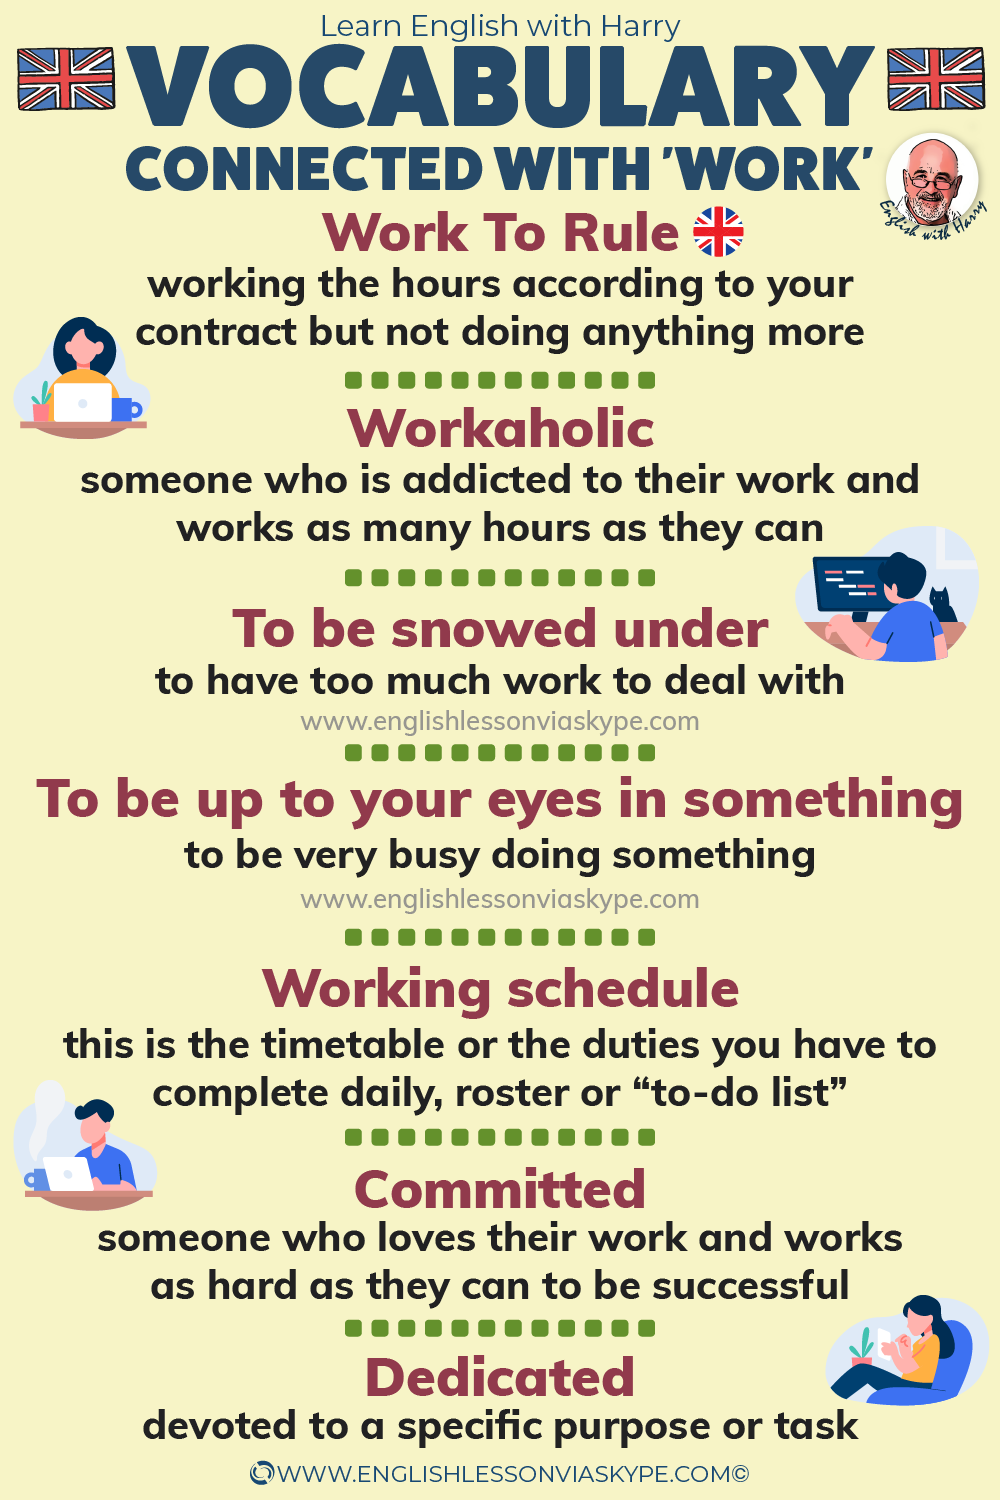 Advanced English words and expressions connected with work. Advanced English learning at www.englishlessonviaskype.com #learnenglish #englishlessons #EnglishTeacher #vocabulary #ingles #อังกฤษ #английский #aprenderingles #english #cursodeingles #учианглийский #vocabulário #dicasdeingles #learningenglish #ingilizce #englishgrammar #englishvocabulary #ielts #idiomas